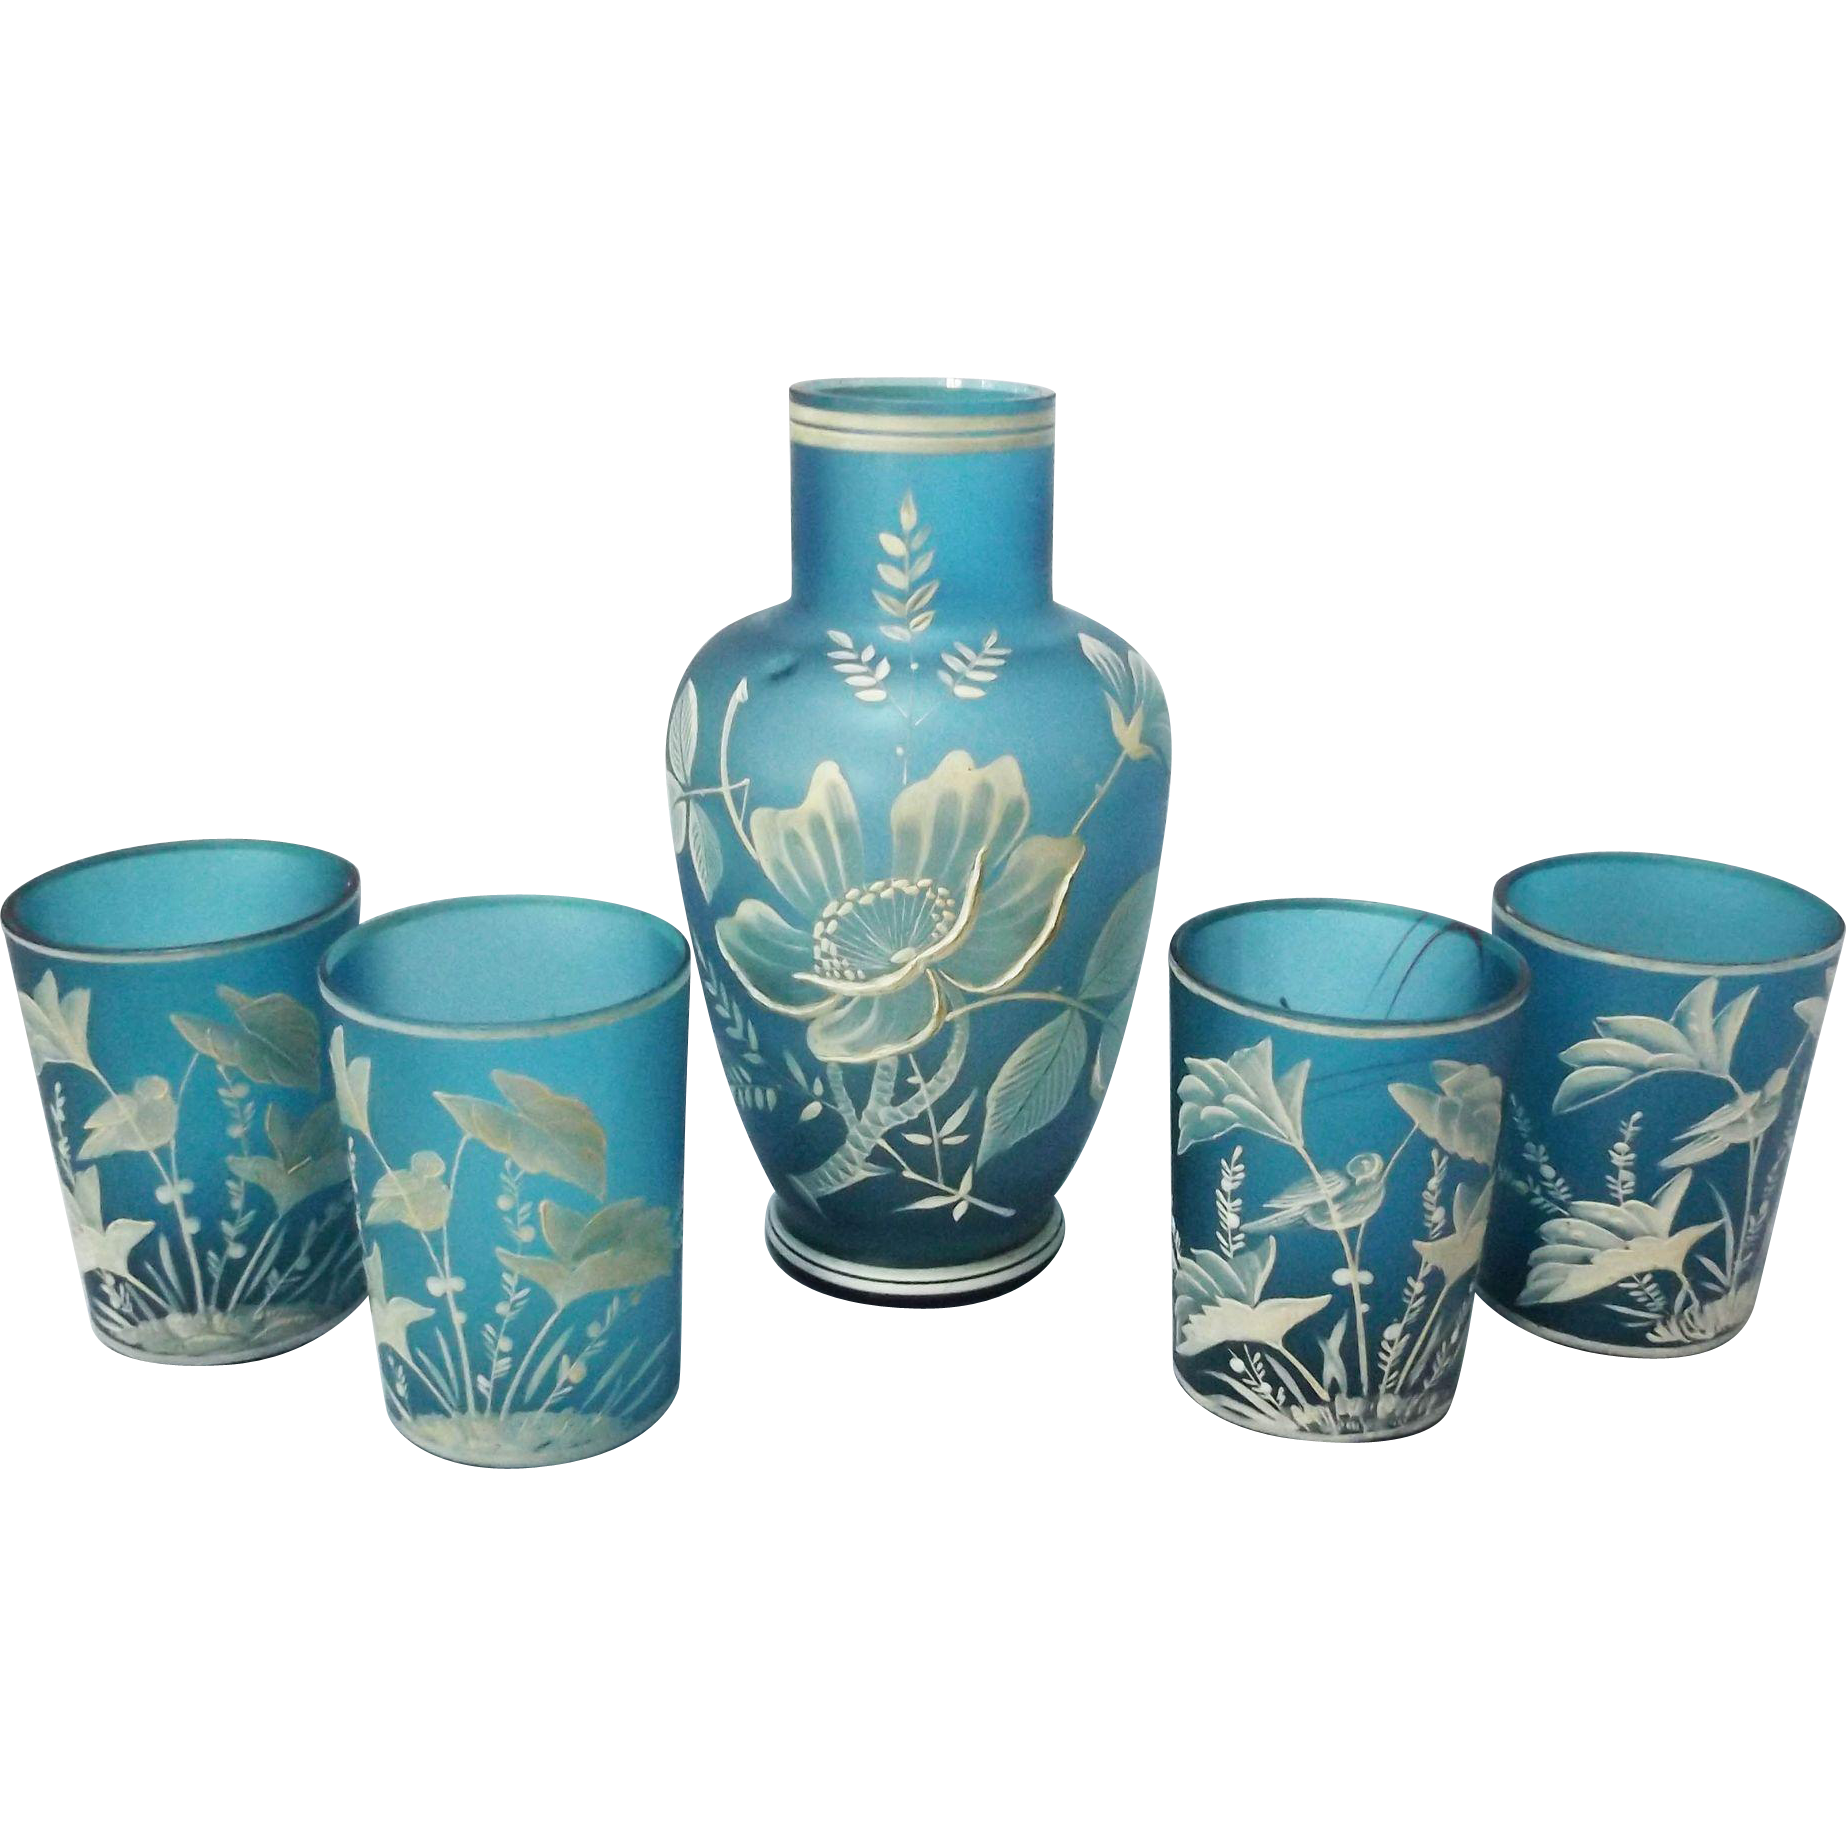 Vintage Teal Bohemian Florentine Art Cameo Glass Set From